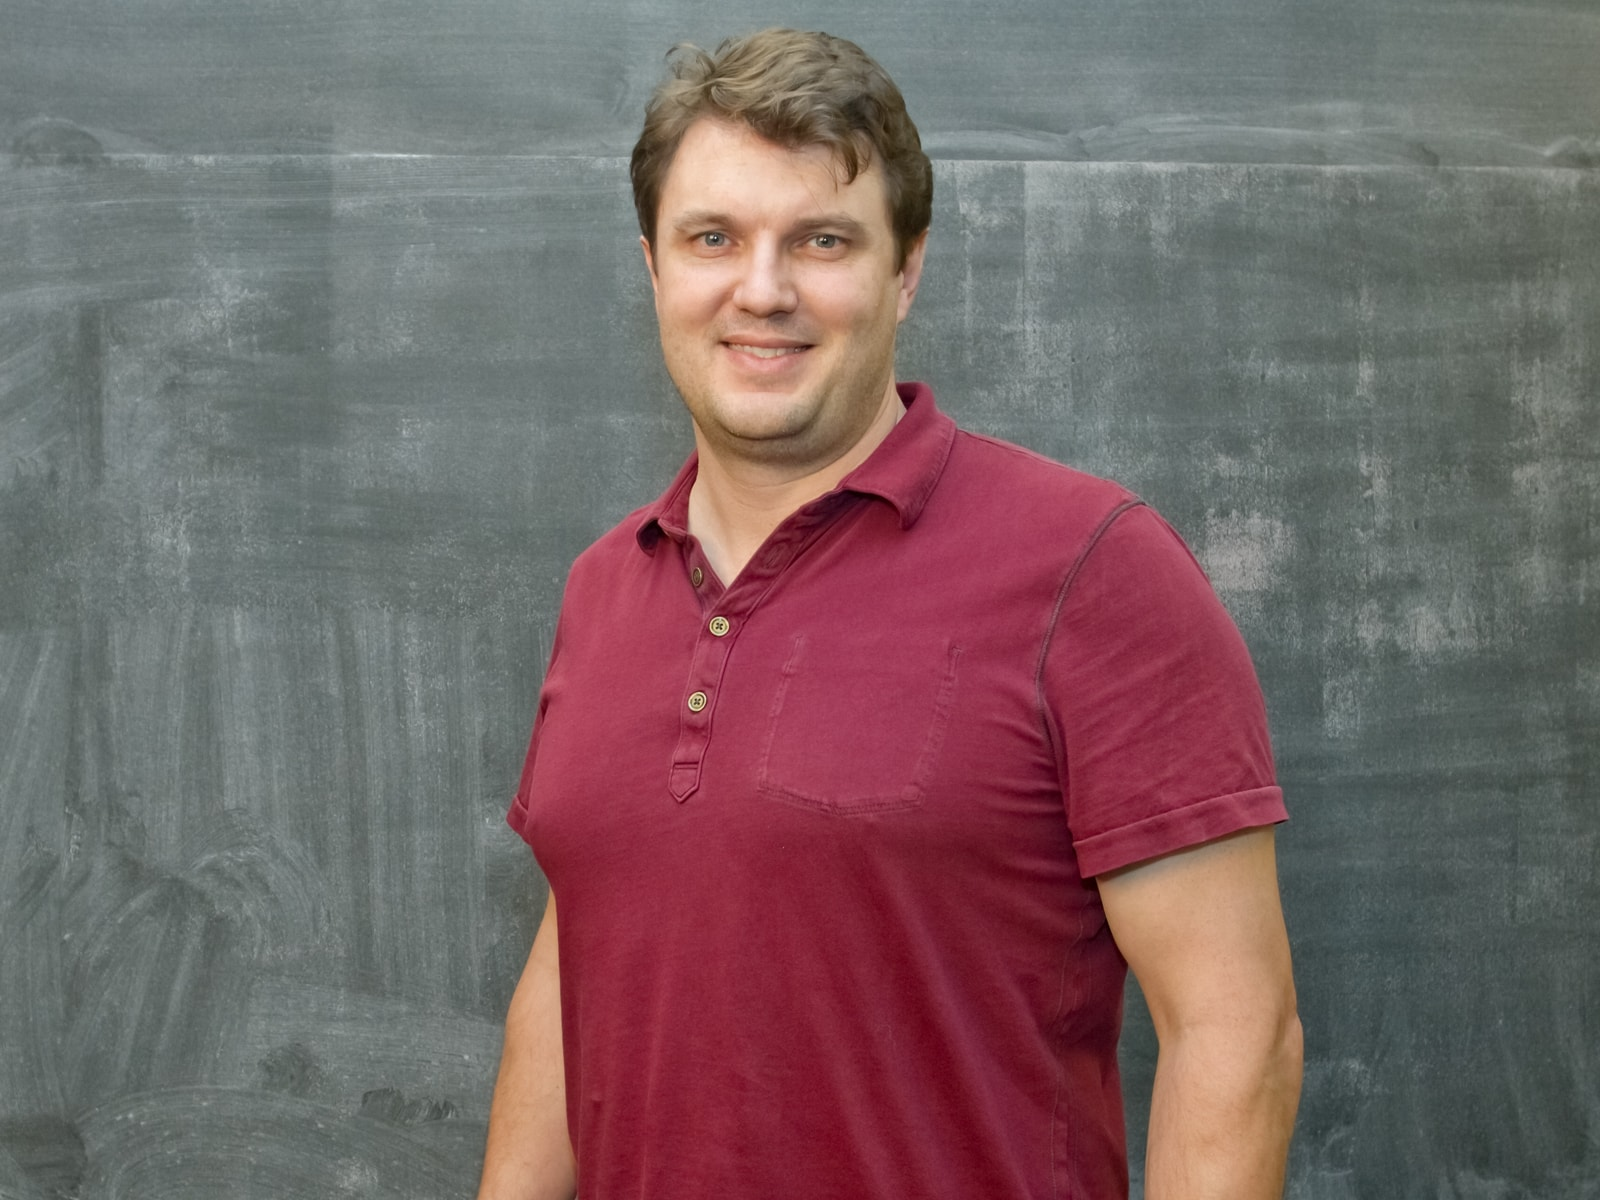 DigiPen physics professor Charles Duba smiling in front of a blackboard